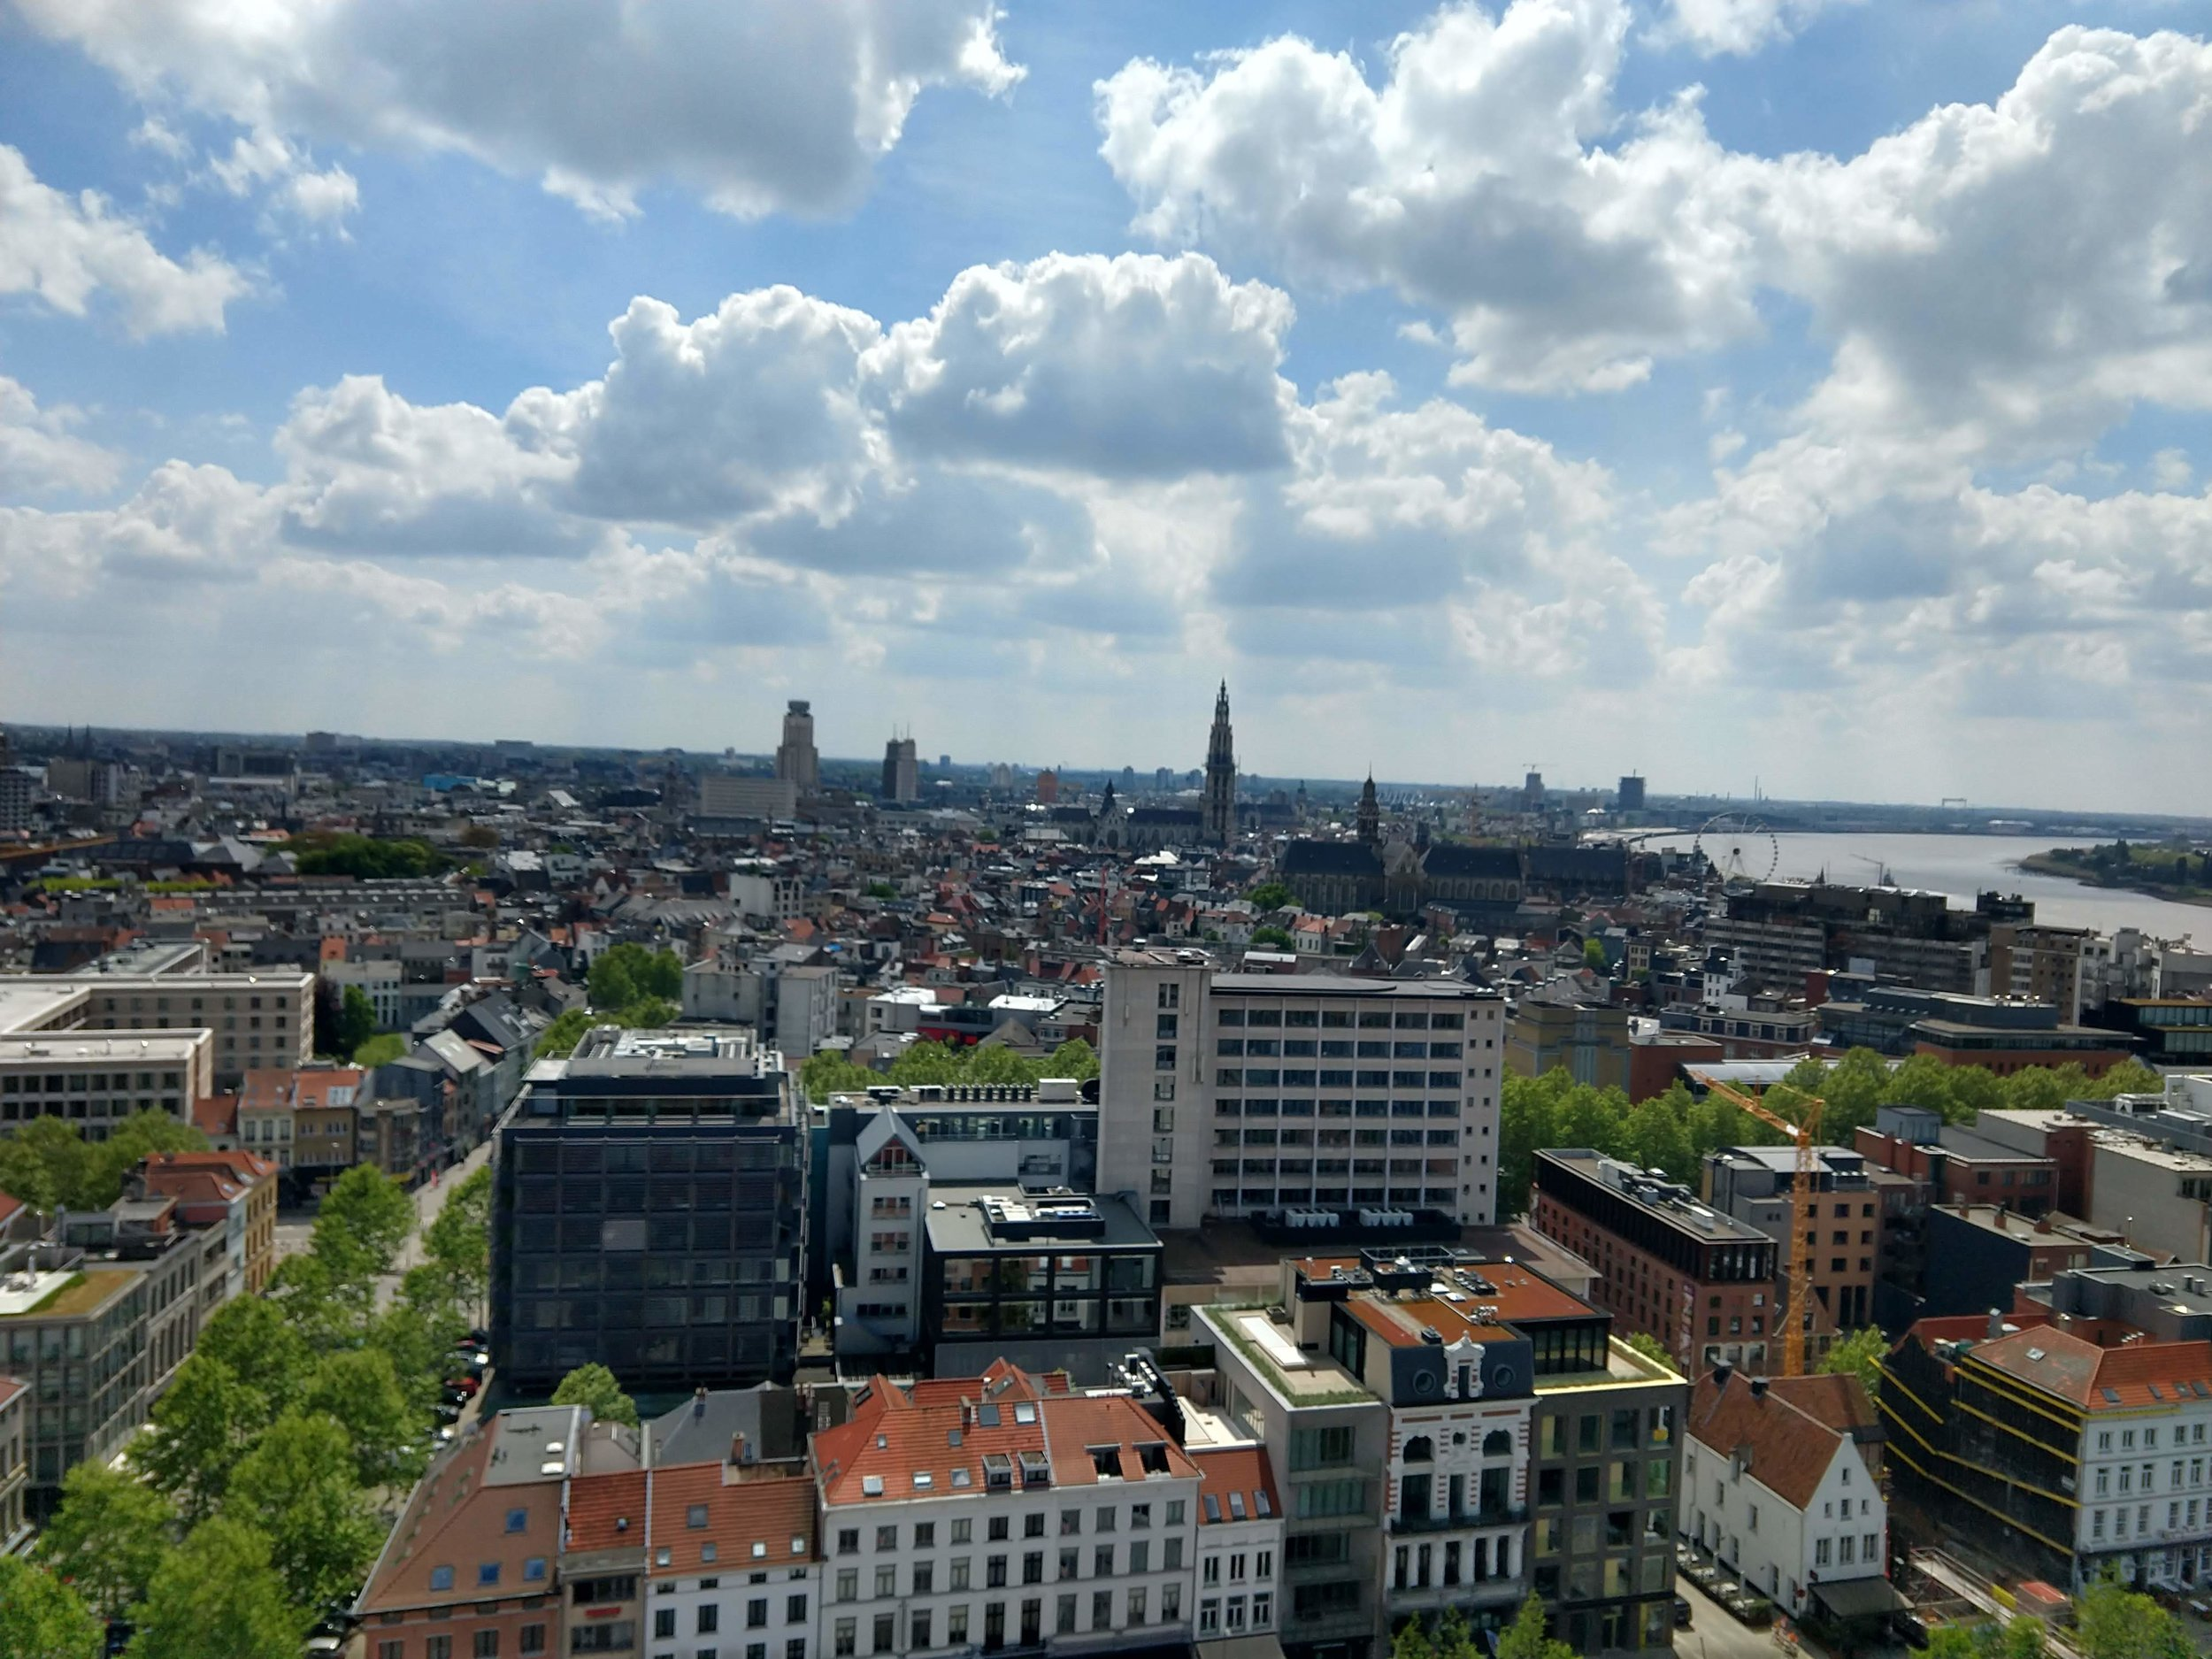 The Museum aan de Stroom (MAS) is a museum located along the river Scheldt. You can climb to its observation deck for free and get a pretty epic view of both the city and the port.